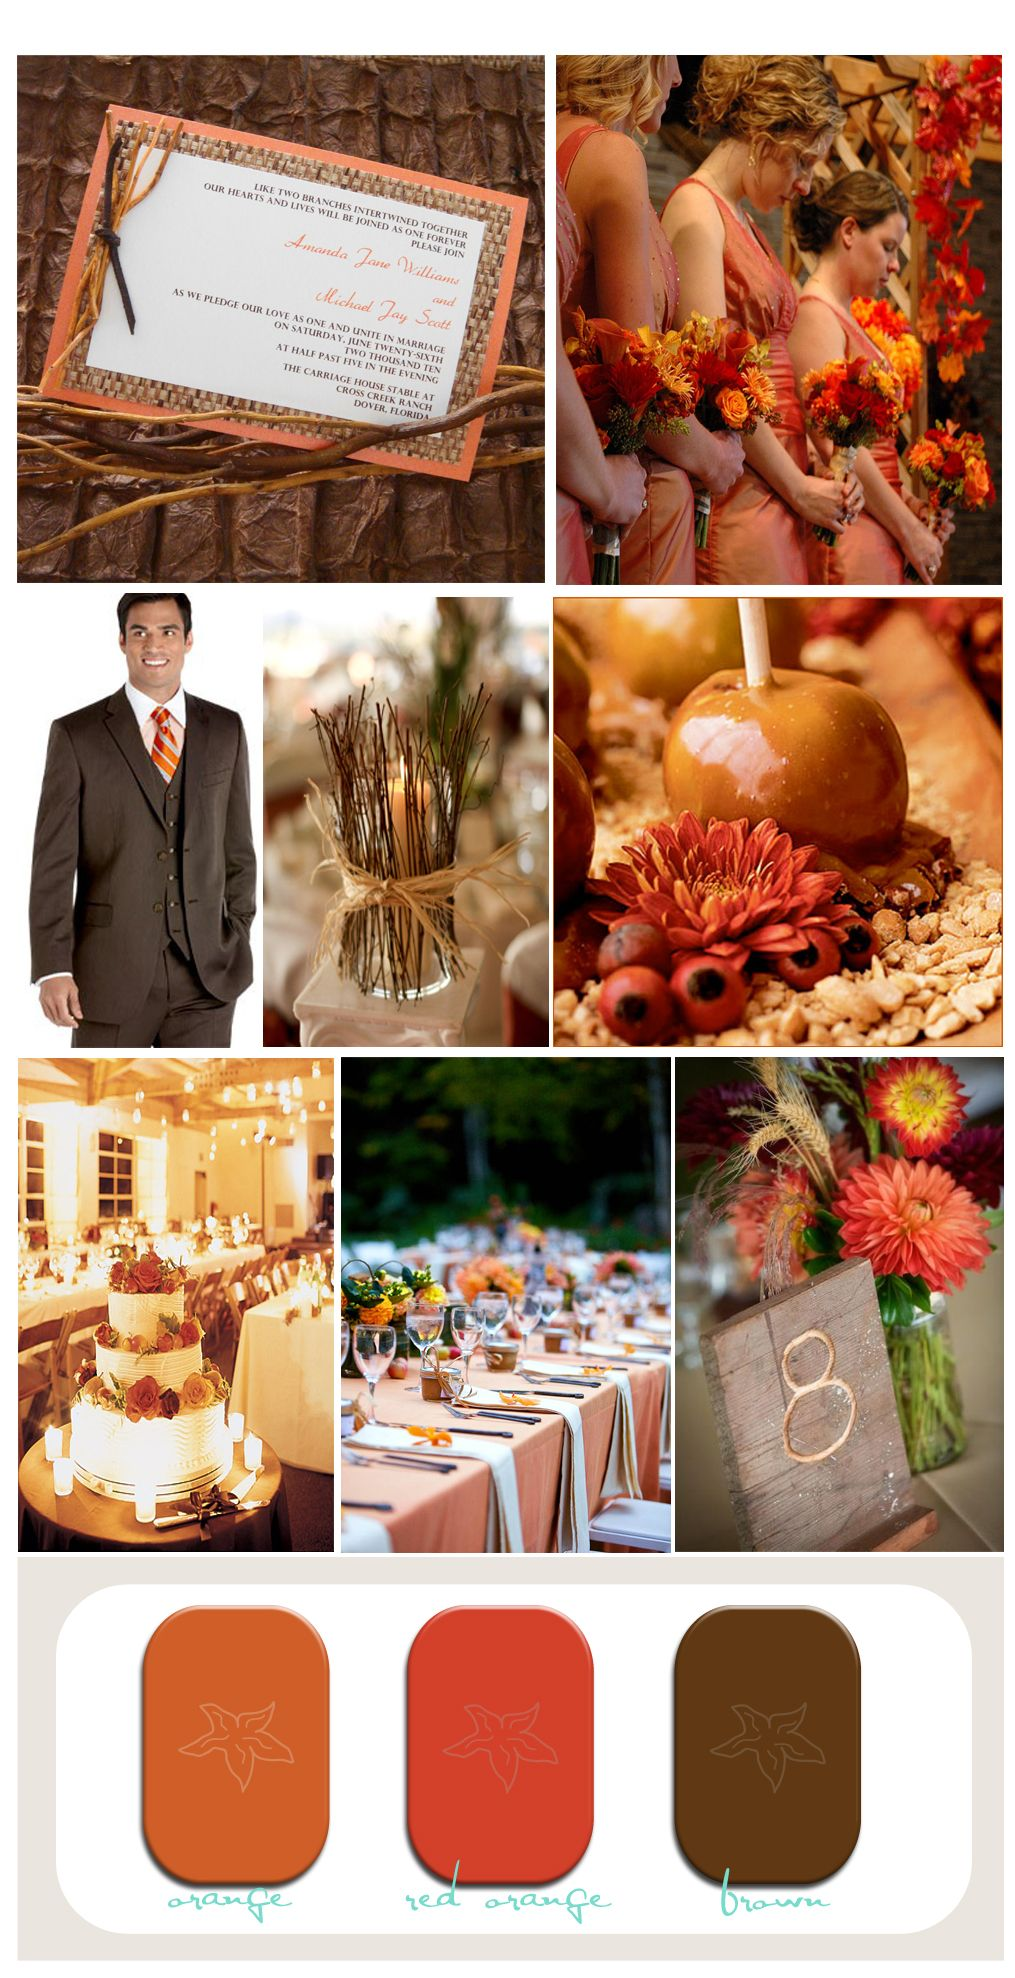 Wall Colour Inspiration: Fall Orange, Red, And Brown